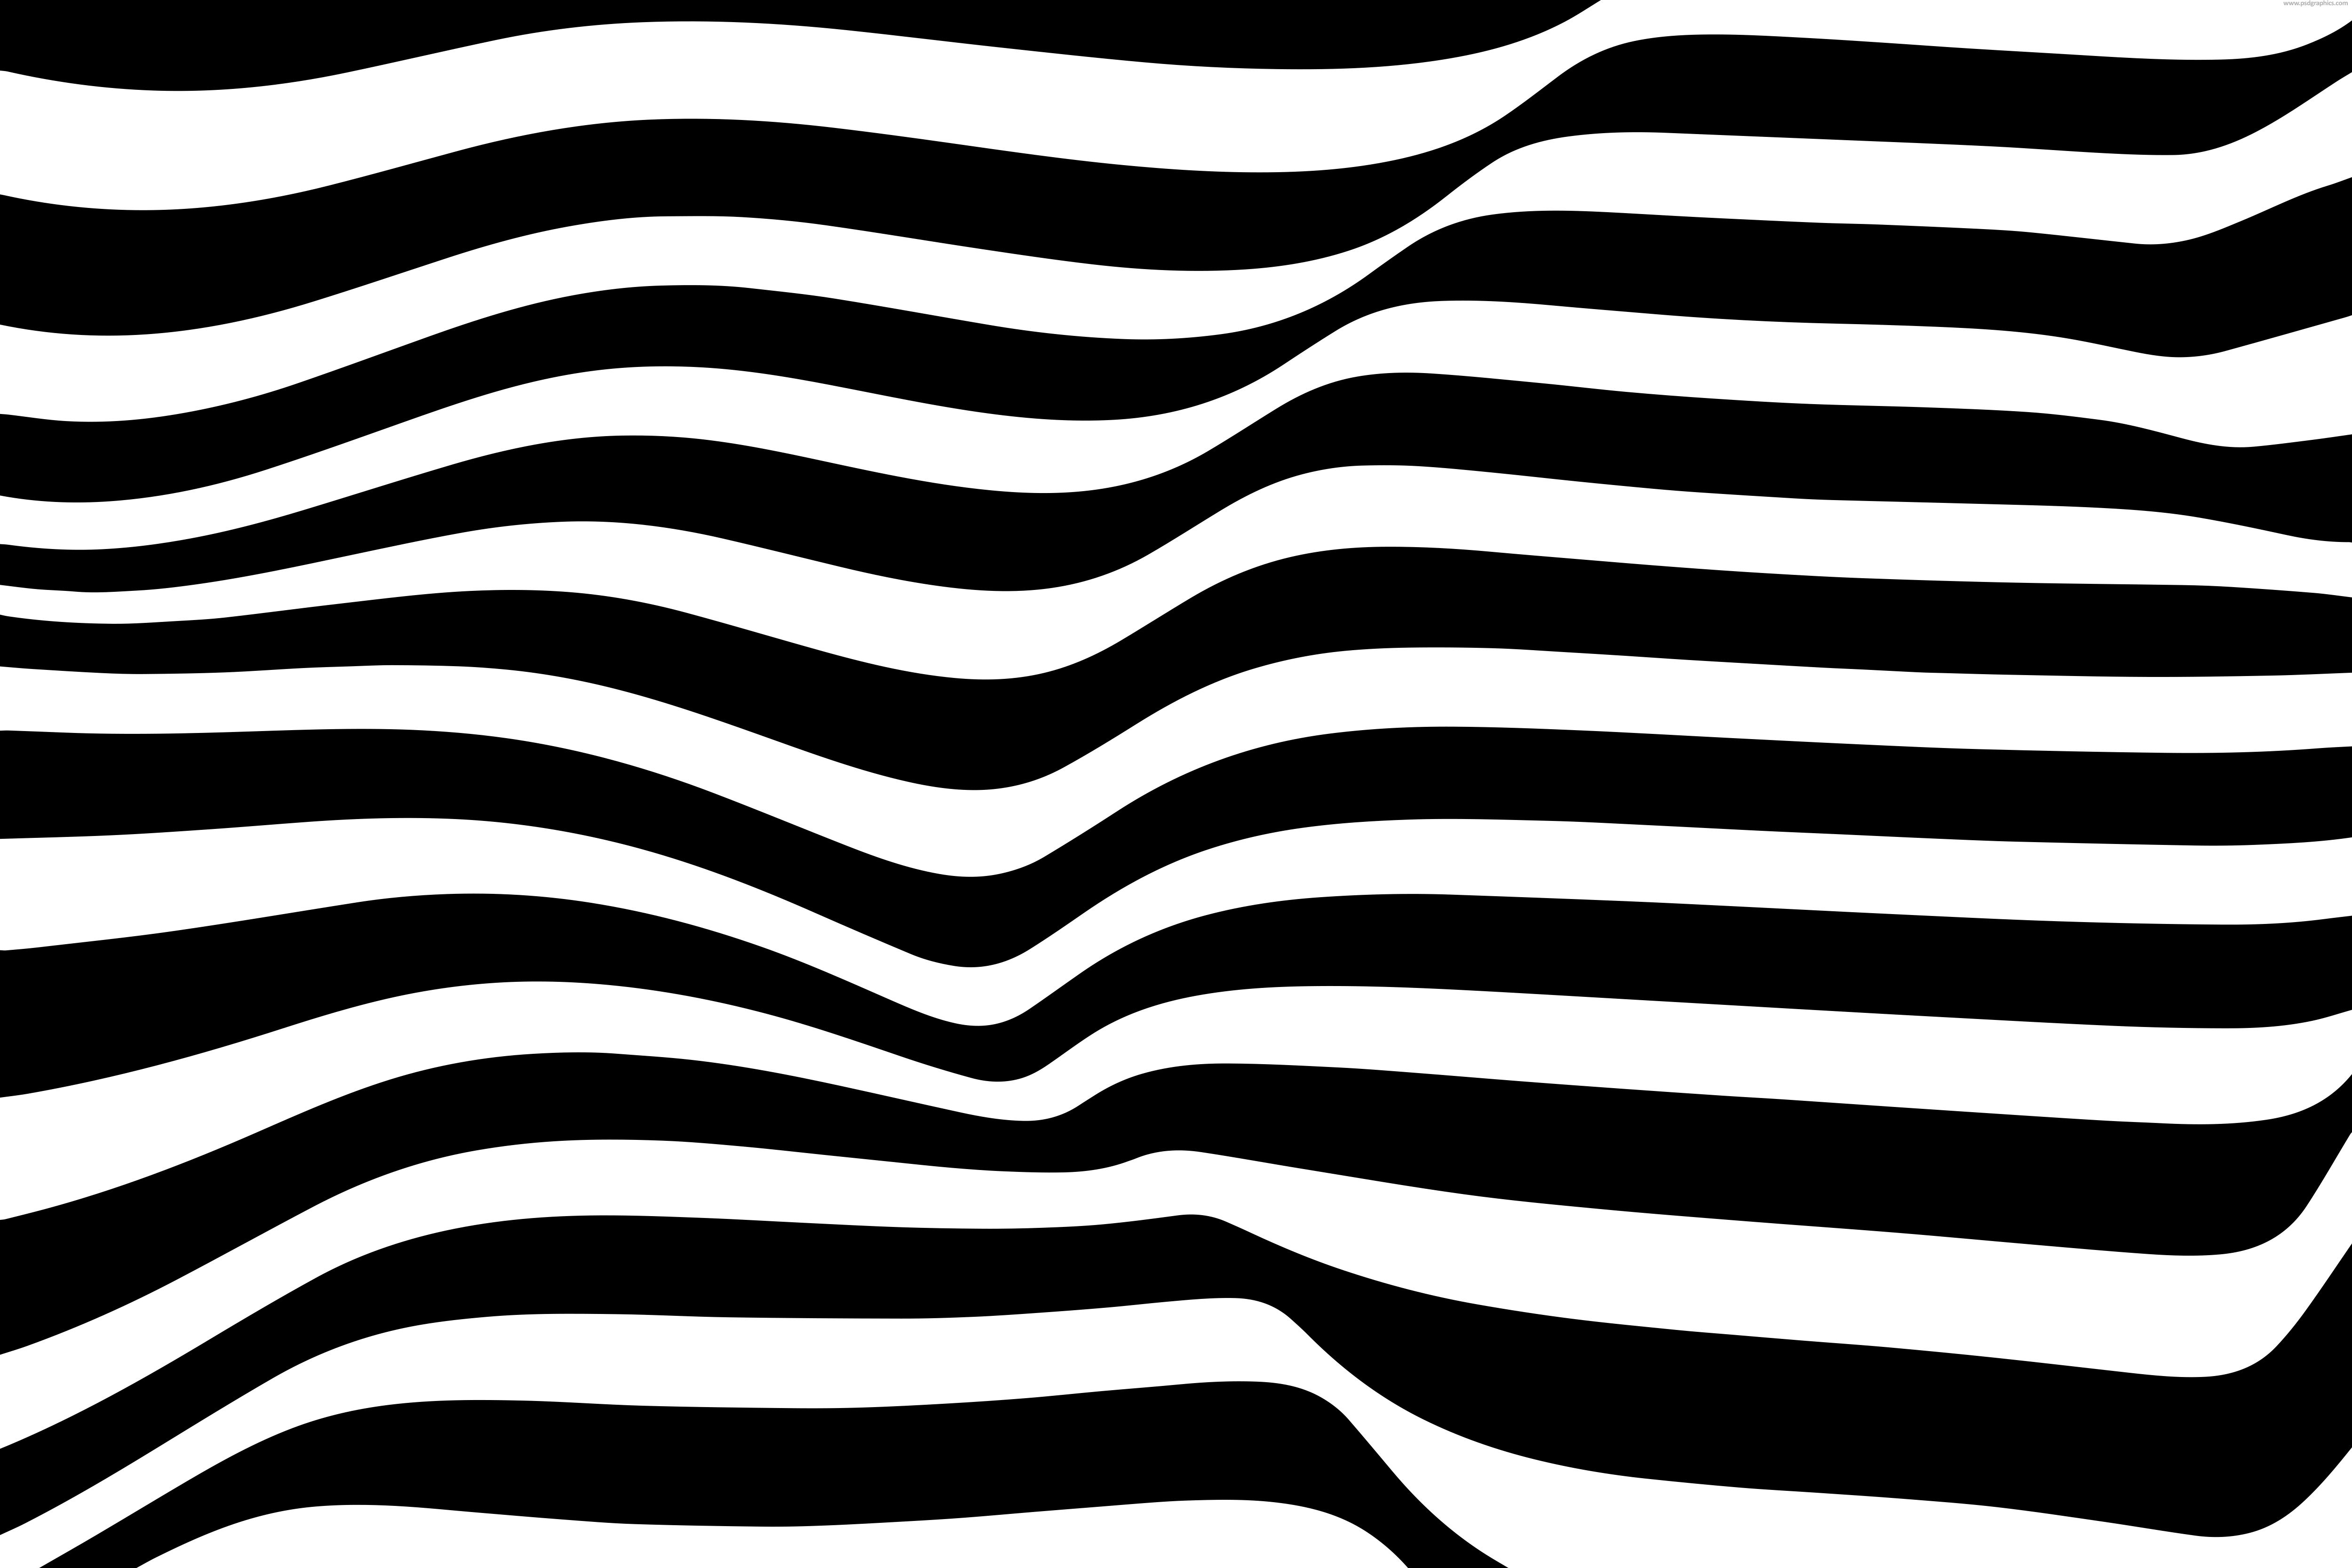 Black and white wavy lines background | PSDGraphics